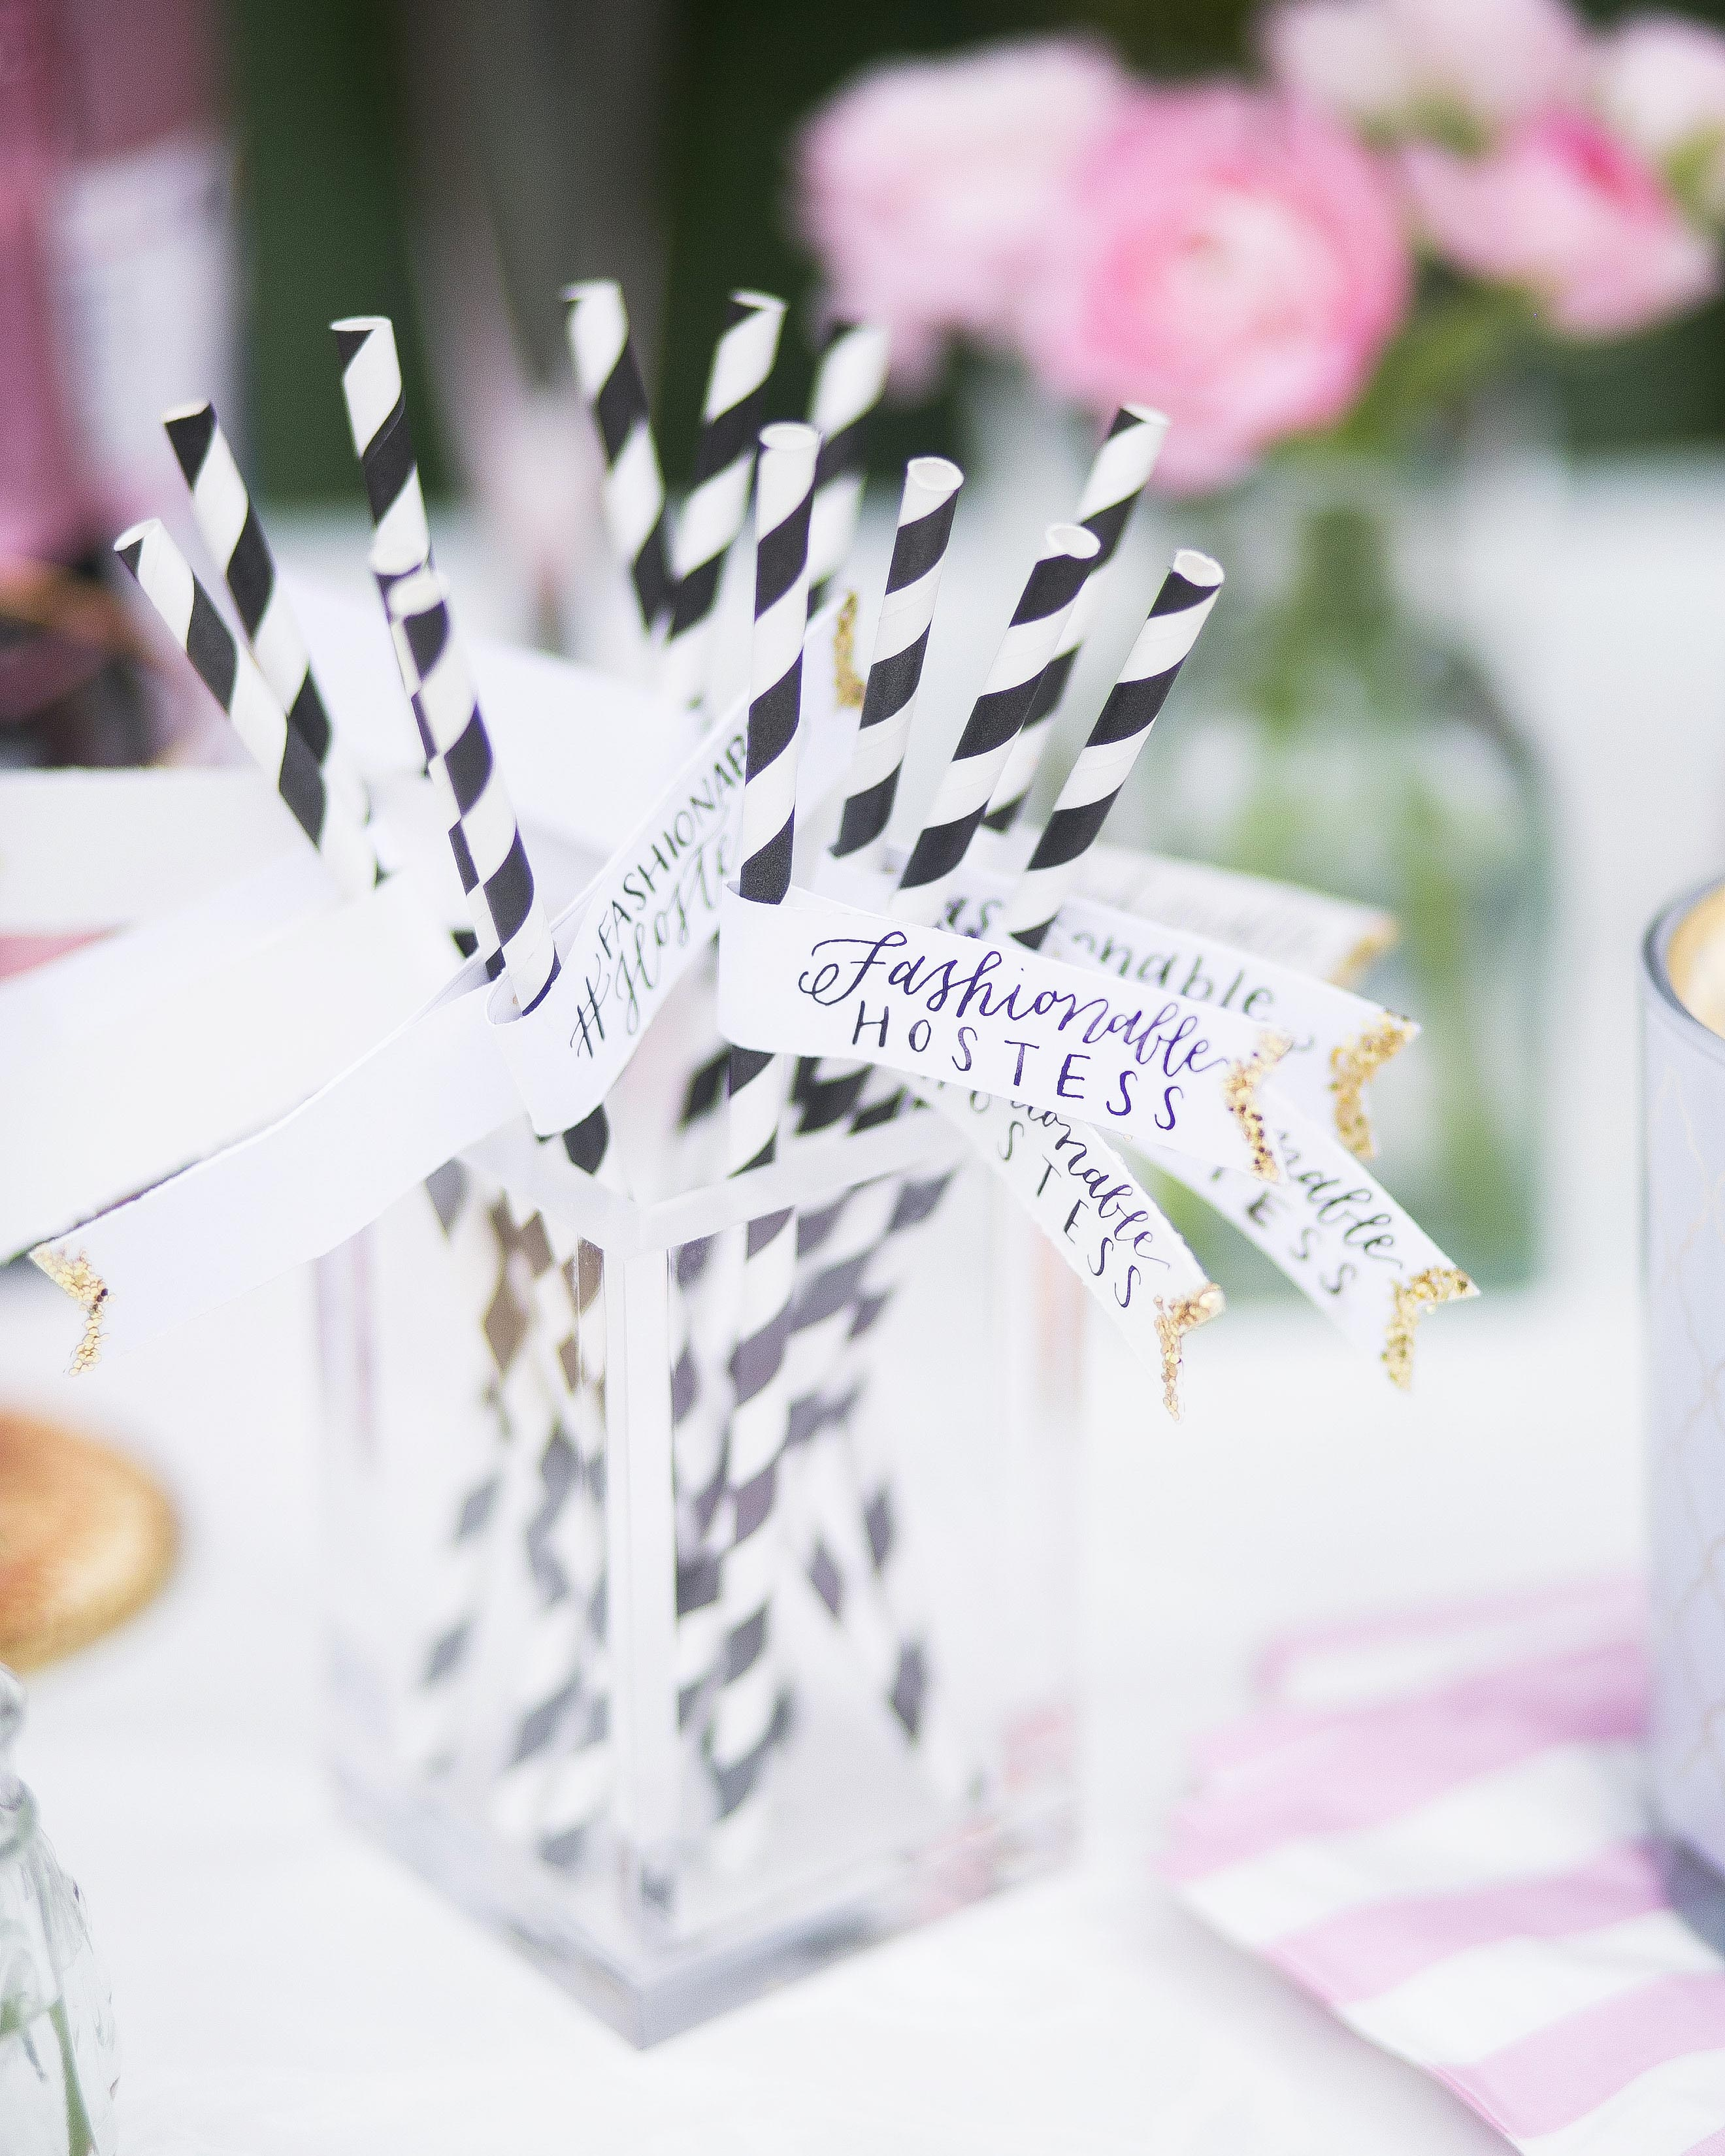 fashionable-hostess-bridal-shower-custom-straws-0716.jpg